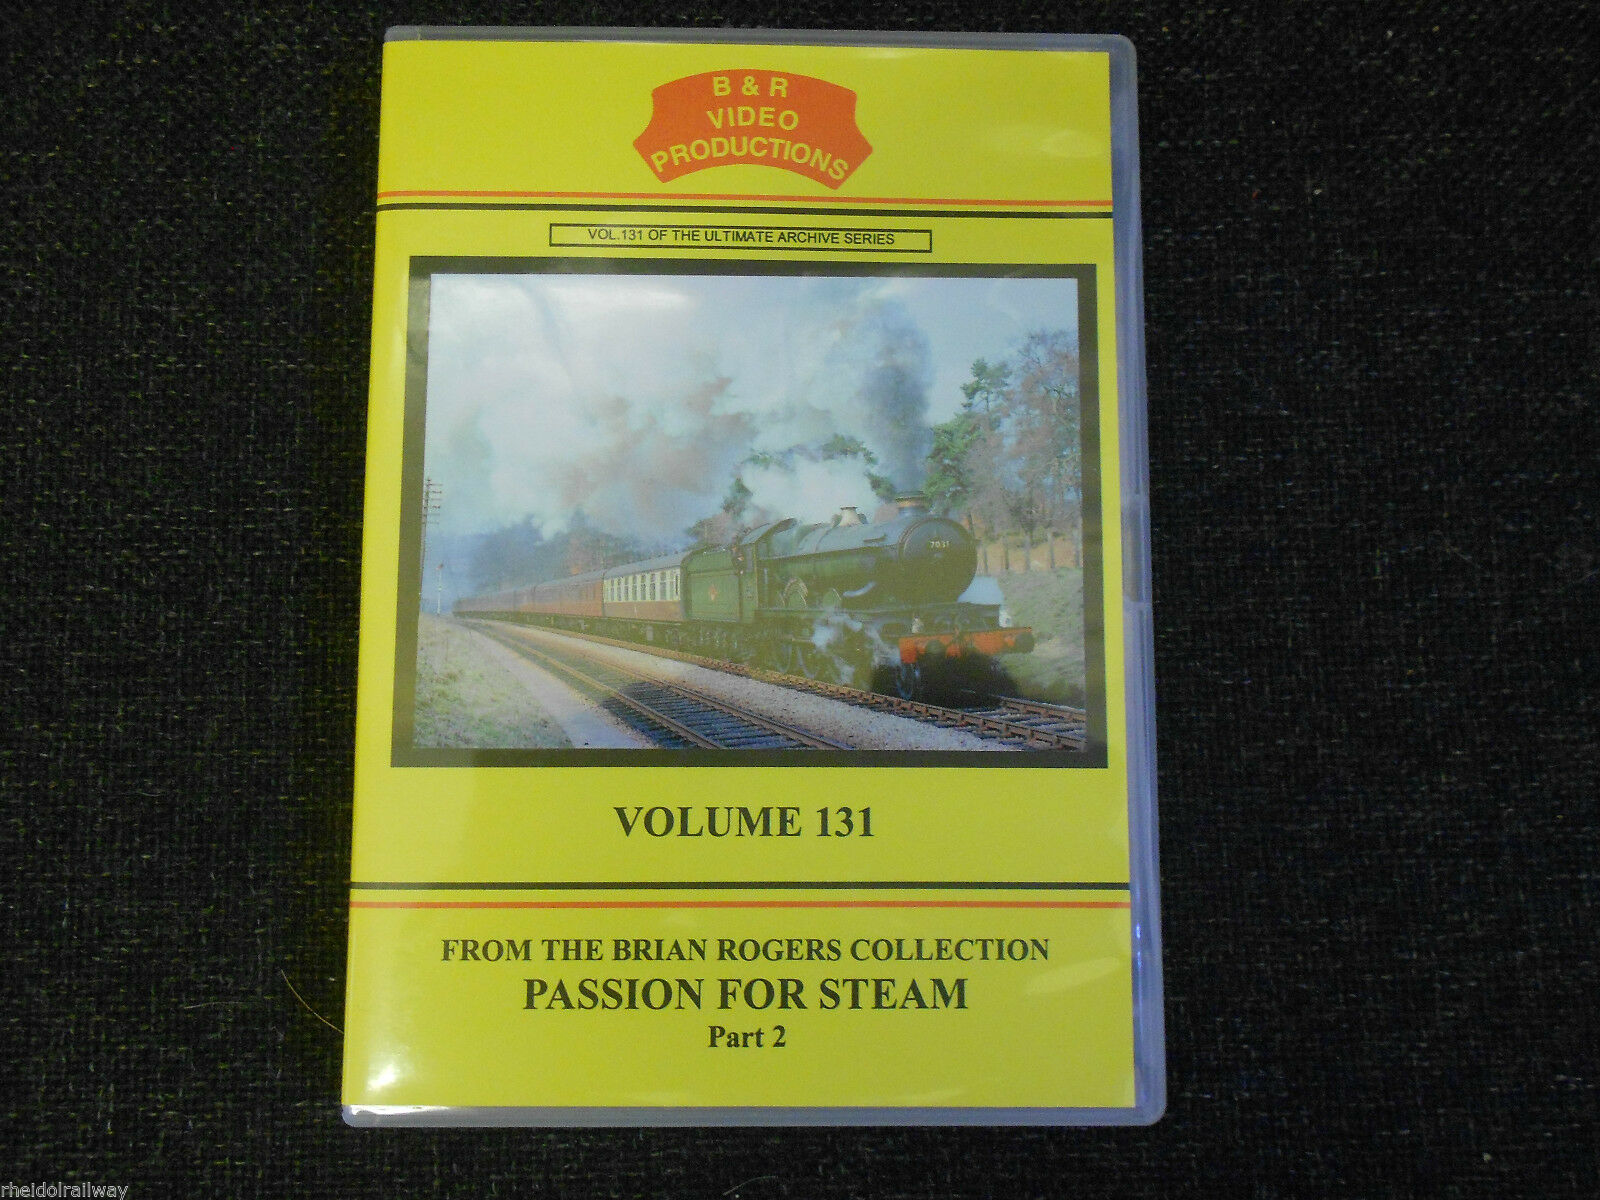 Lickey, S&D, Wight, Waverley, Snow Hill, Passion For Steam Pt 2 B&R Vol 131 DVD - The Vale of Rheidol Railway